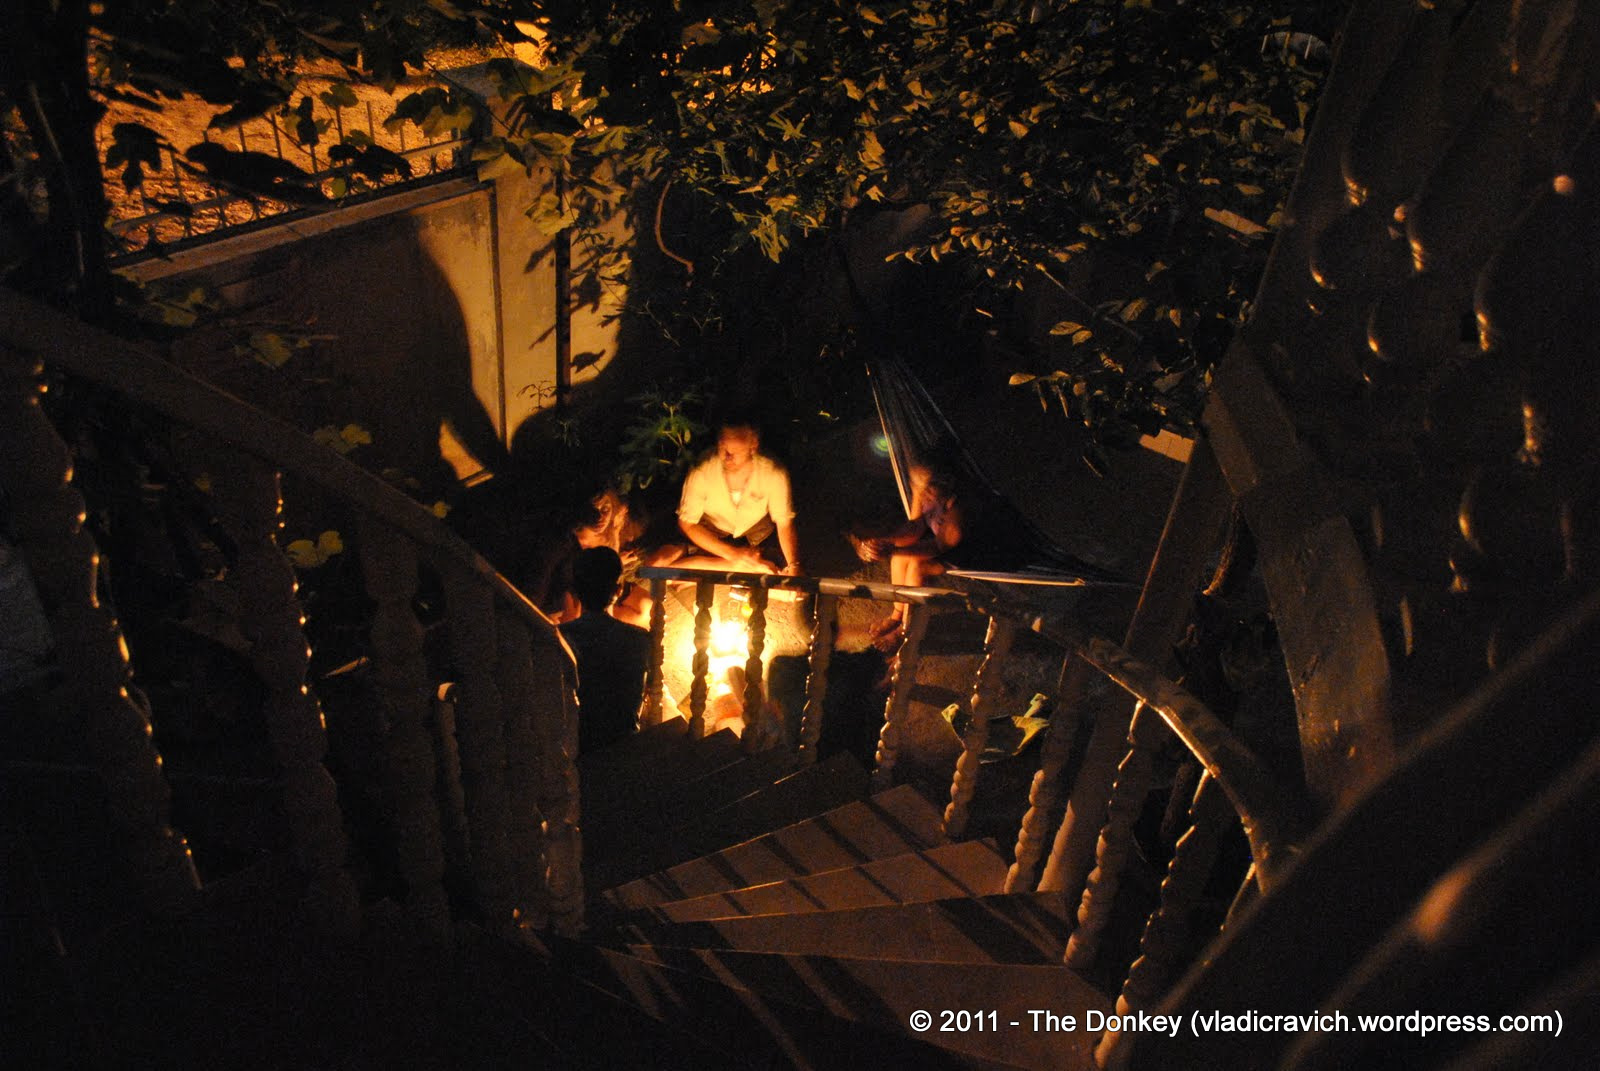 Guests at the Tbilisi Hostel during a short power outage